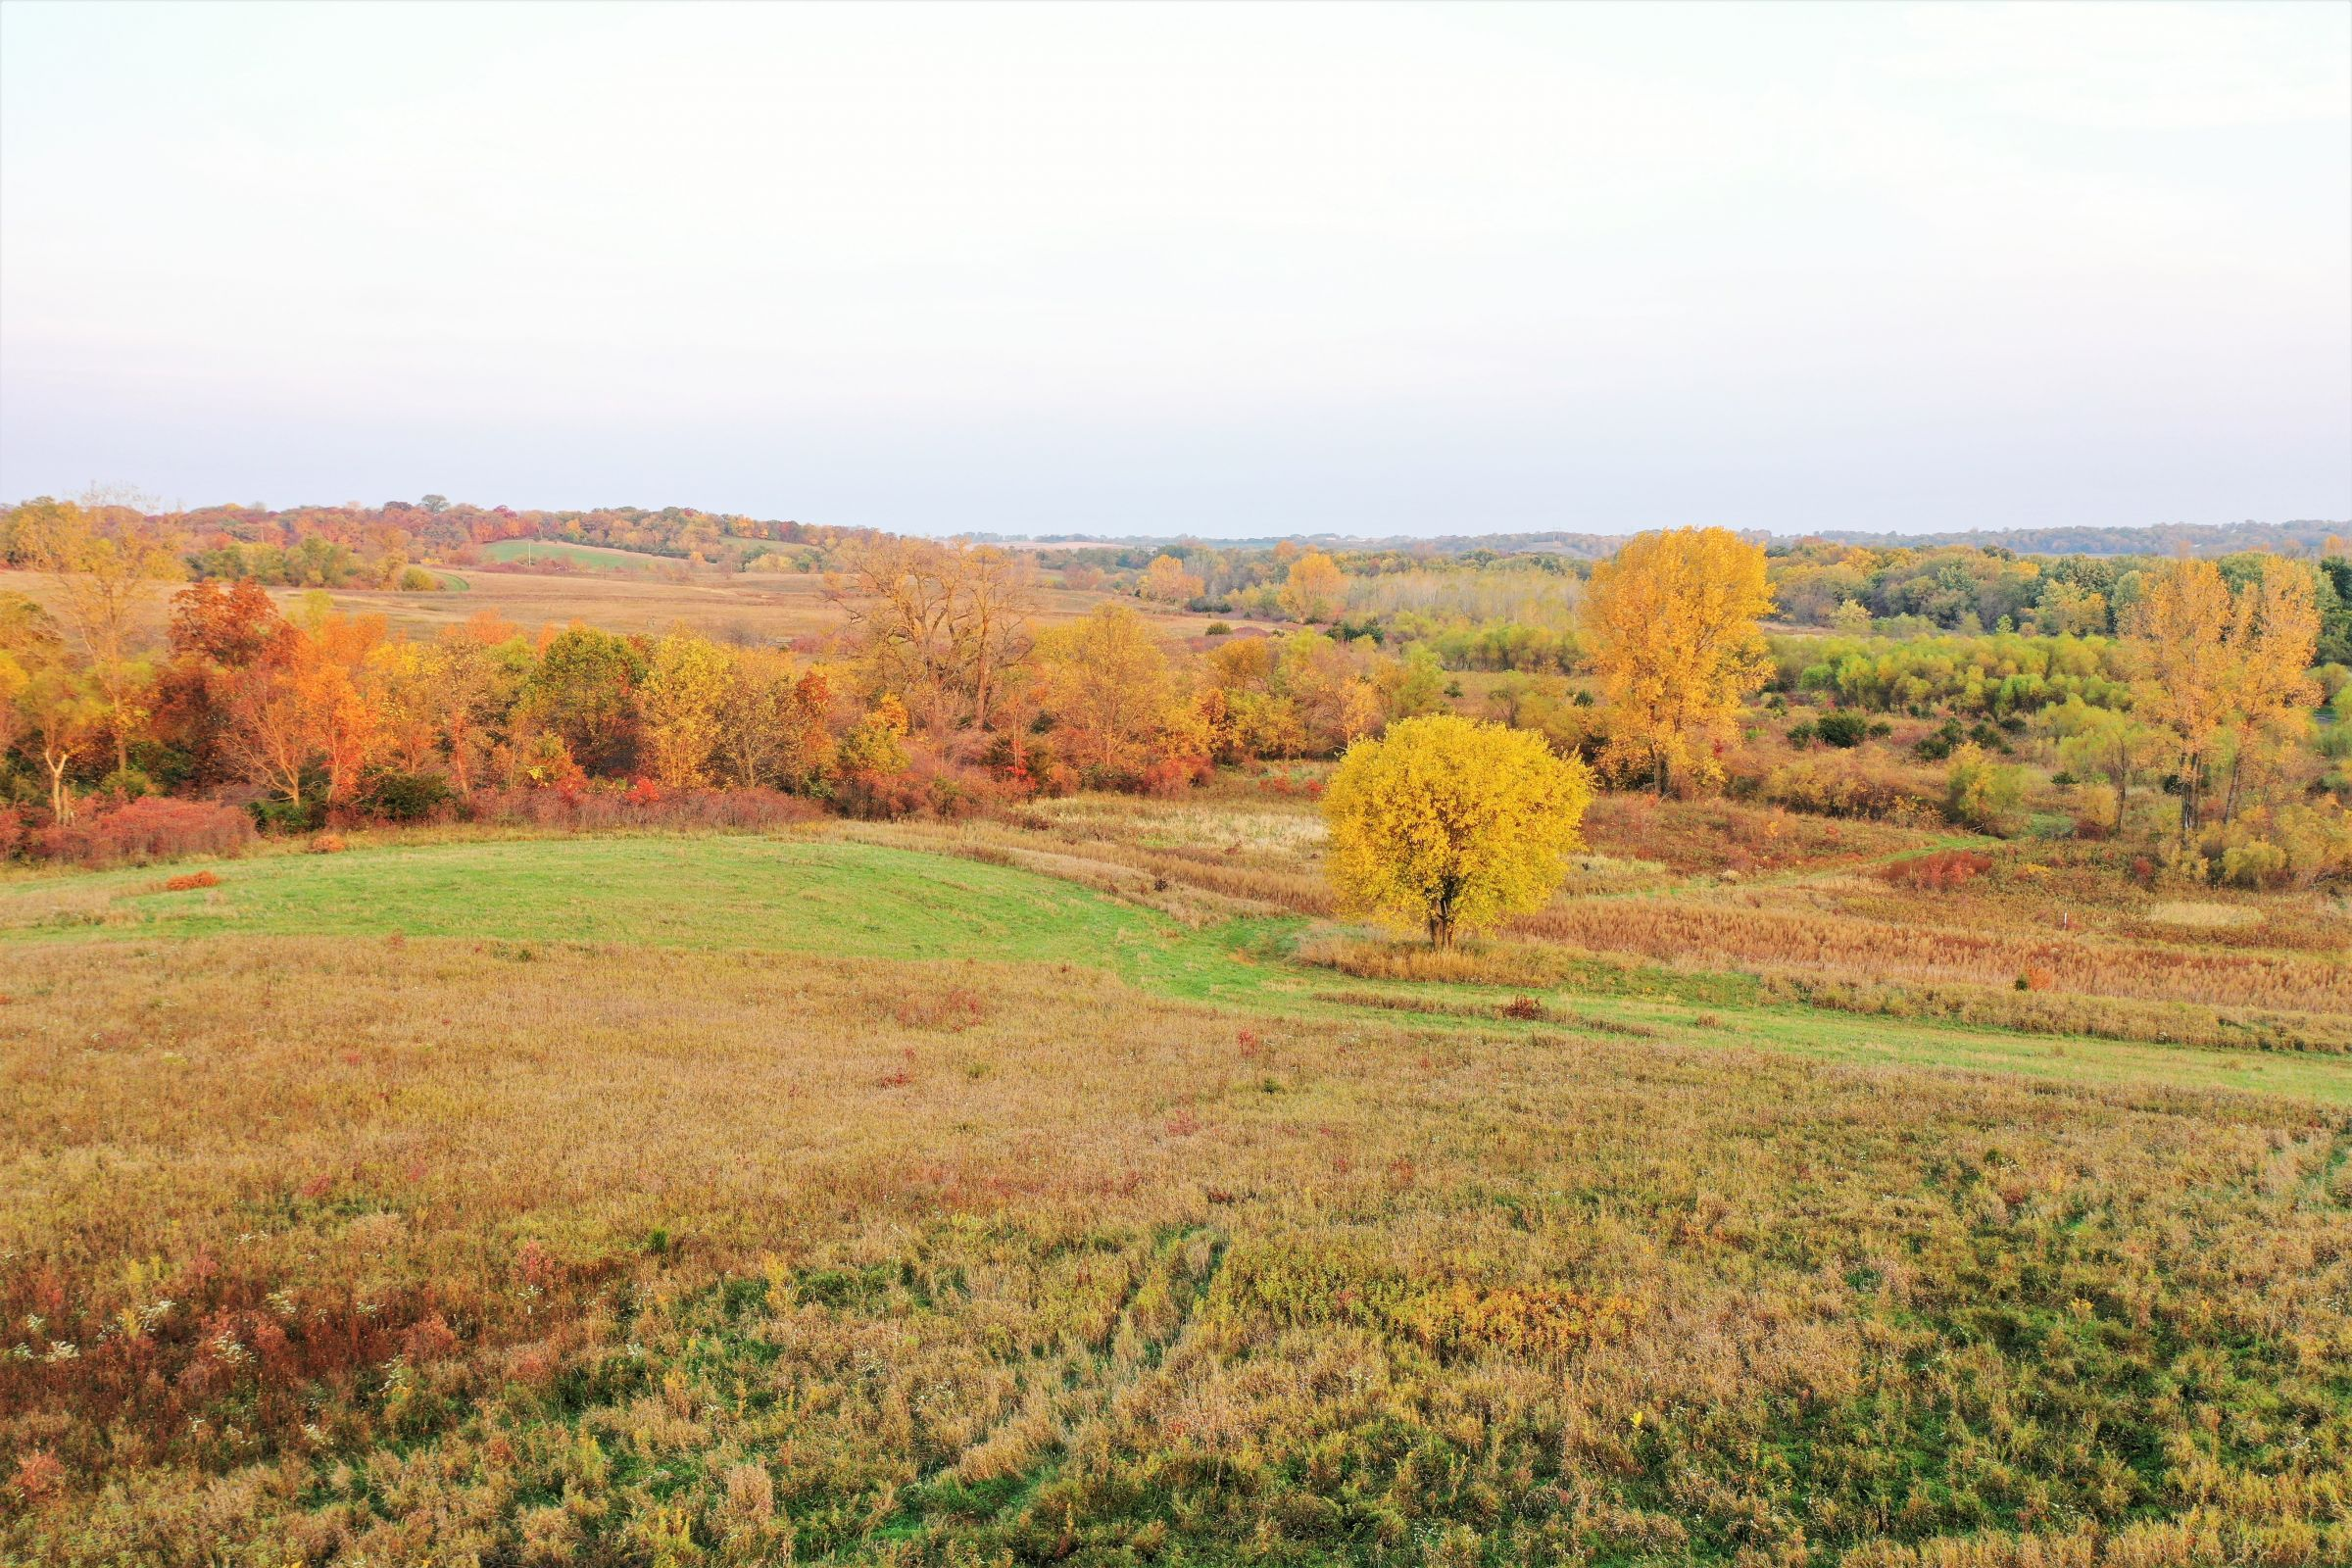 development-land-madison-county-iowa-149-acres-listing-number-15199-0-2020-10-09-132959.jpg